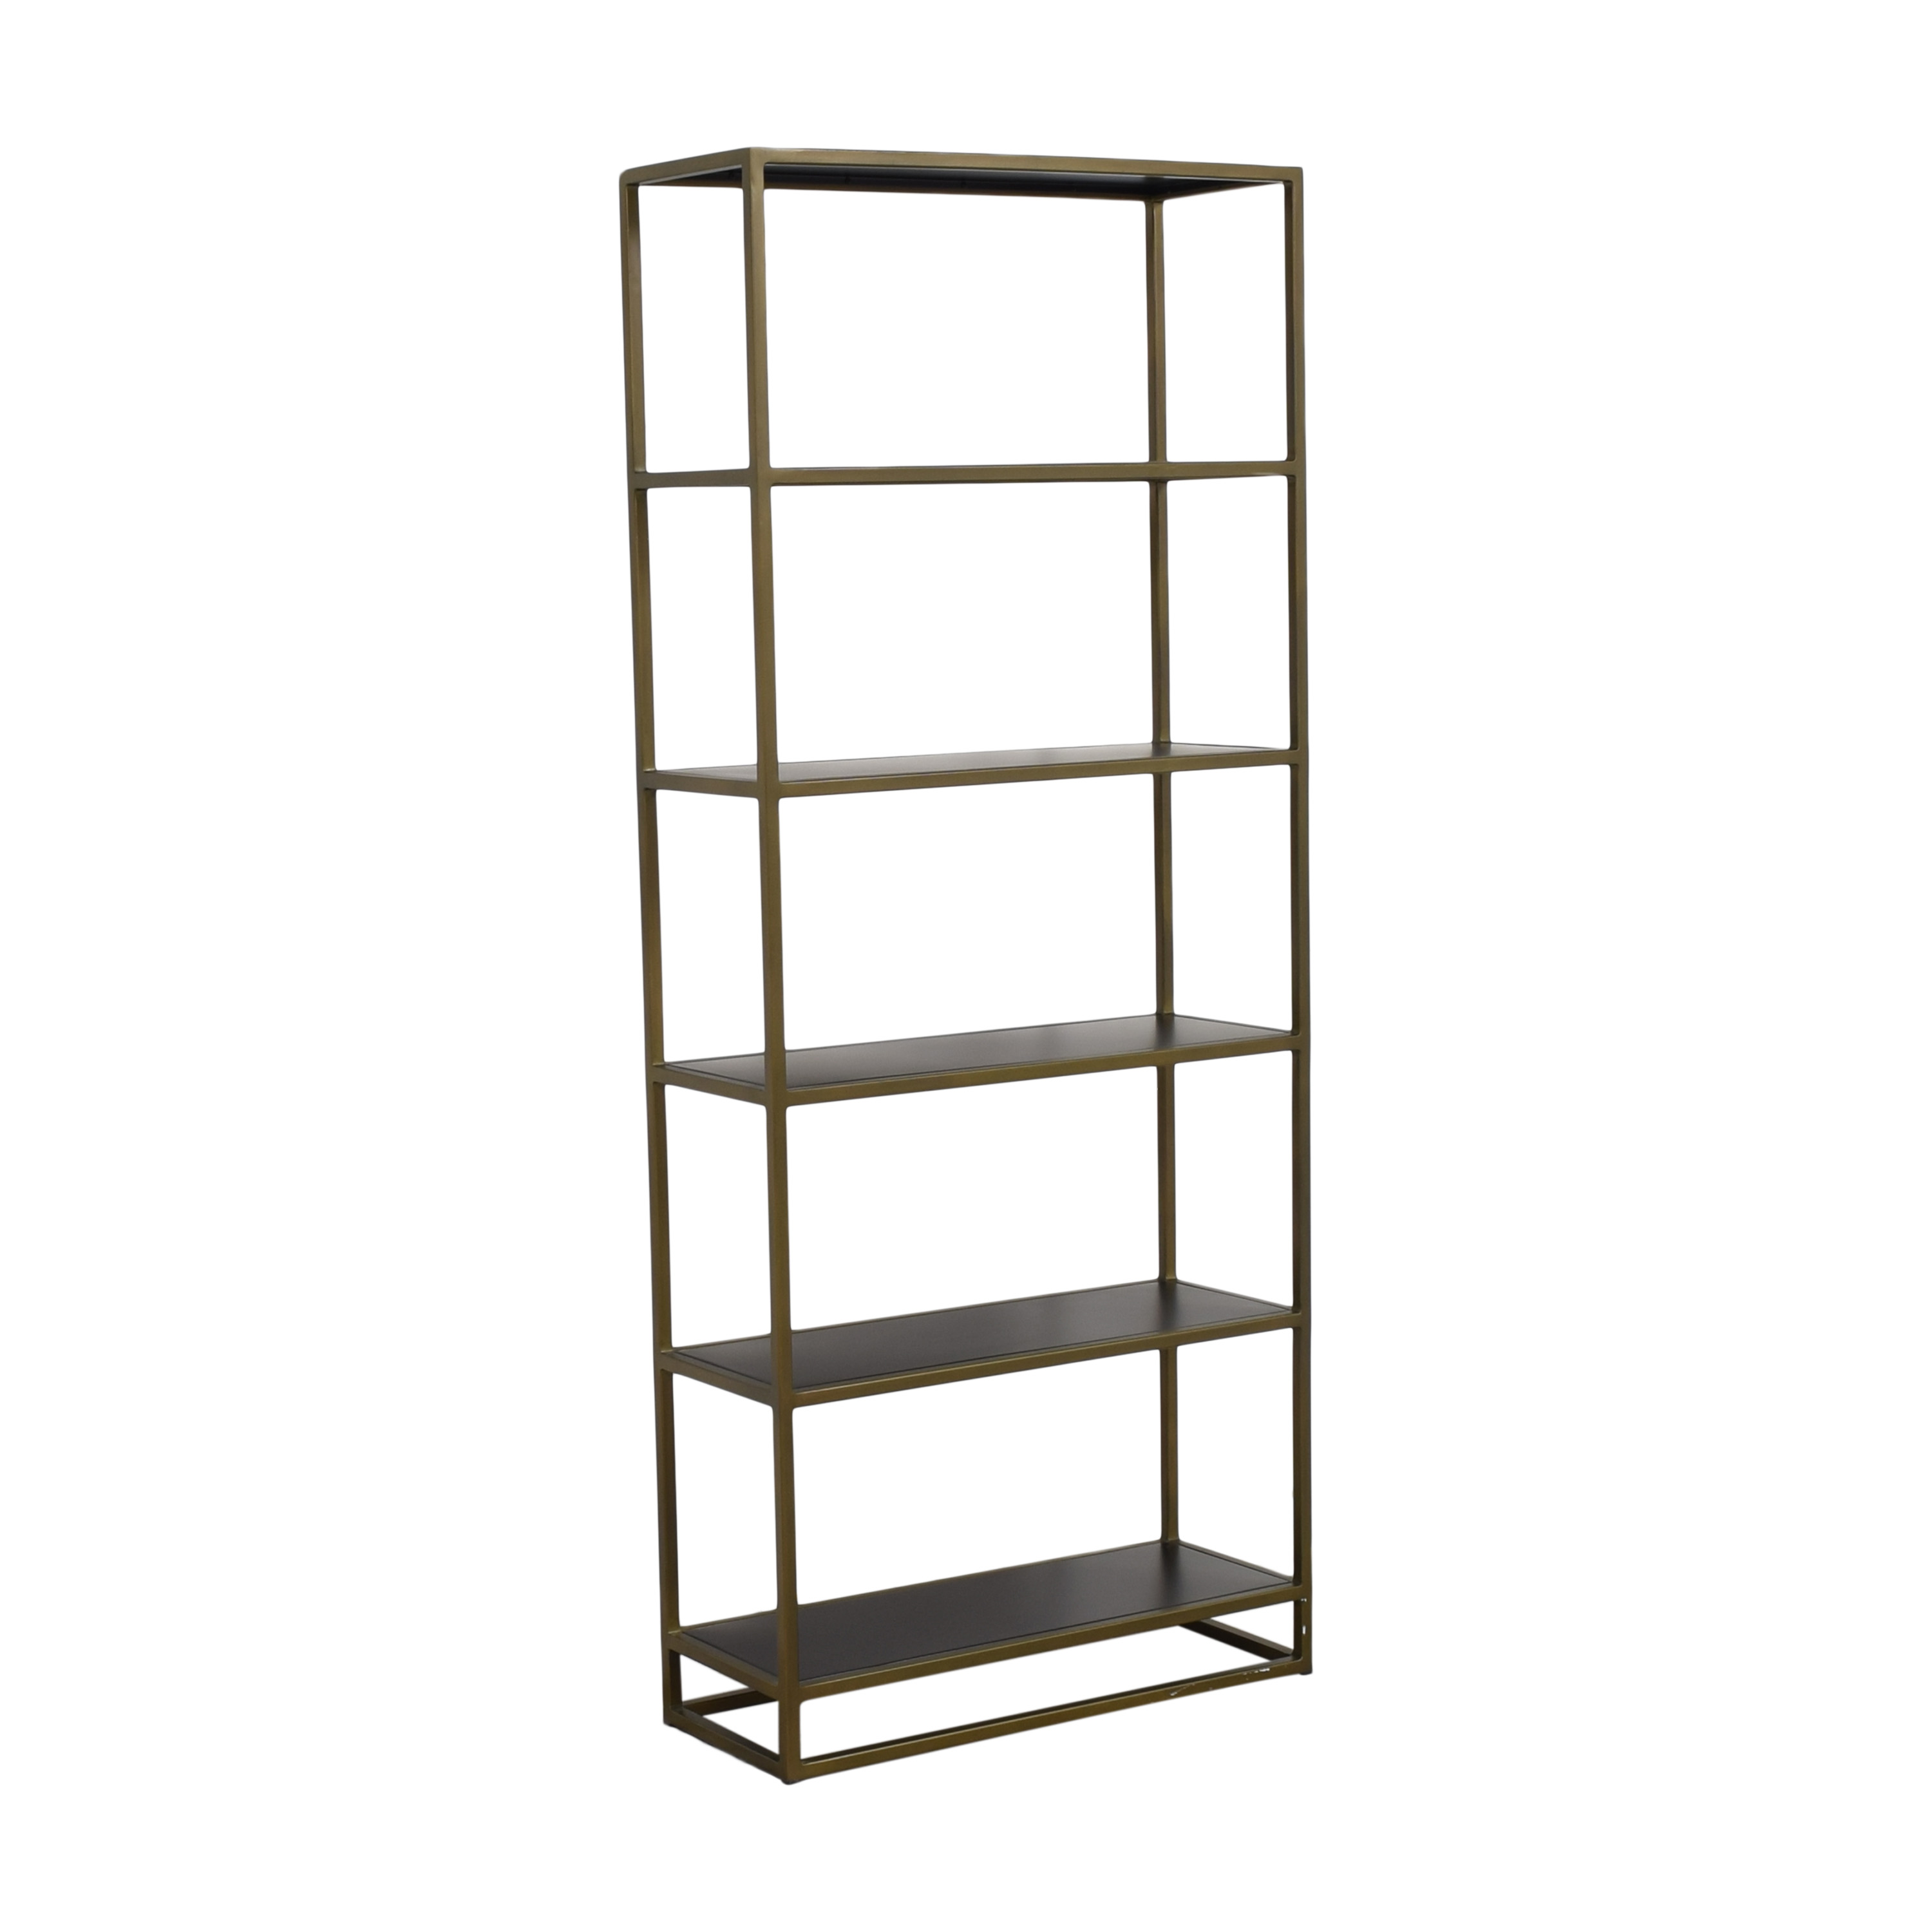 buy Crate & Barrel Remi Large Bookcase Crate & Barrel Bookcases & Shelving